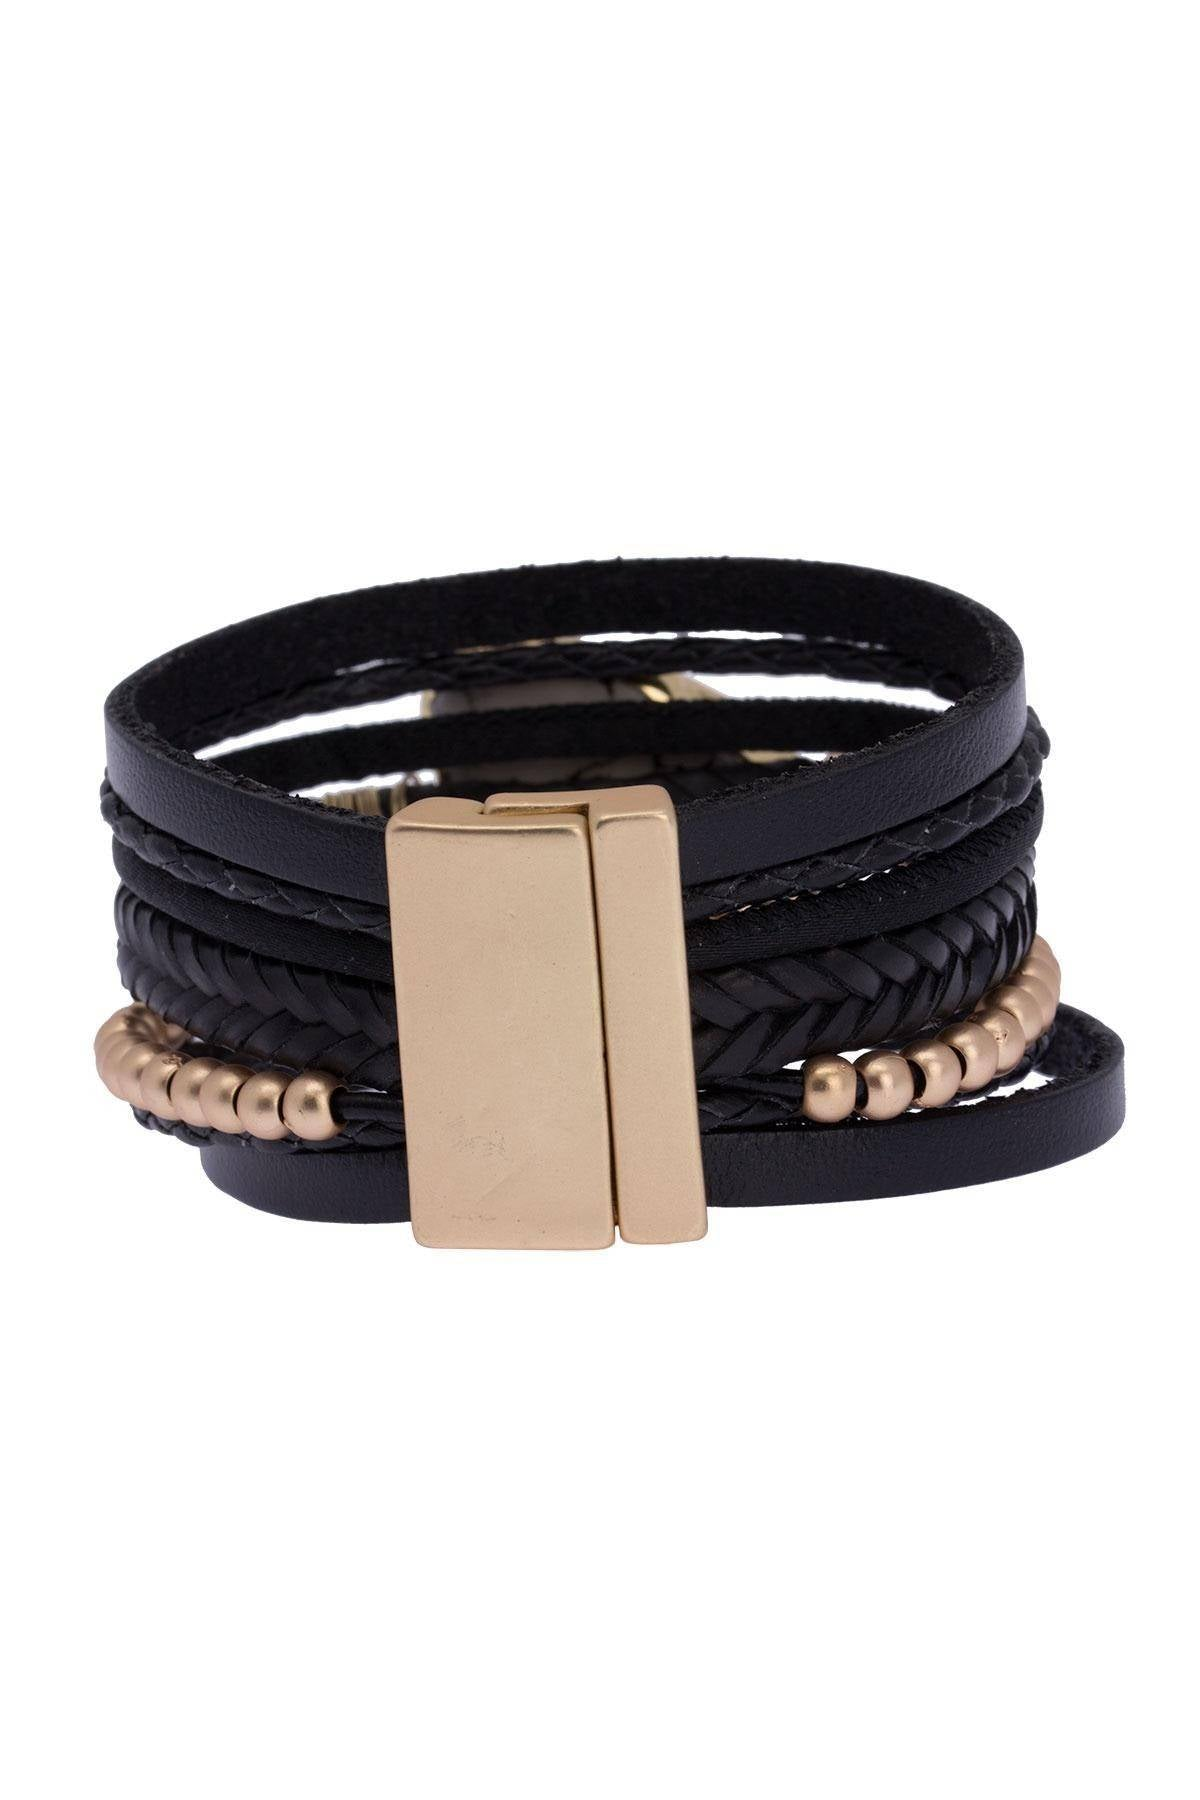 Marble Braid Leather Bracelet